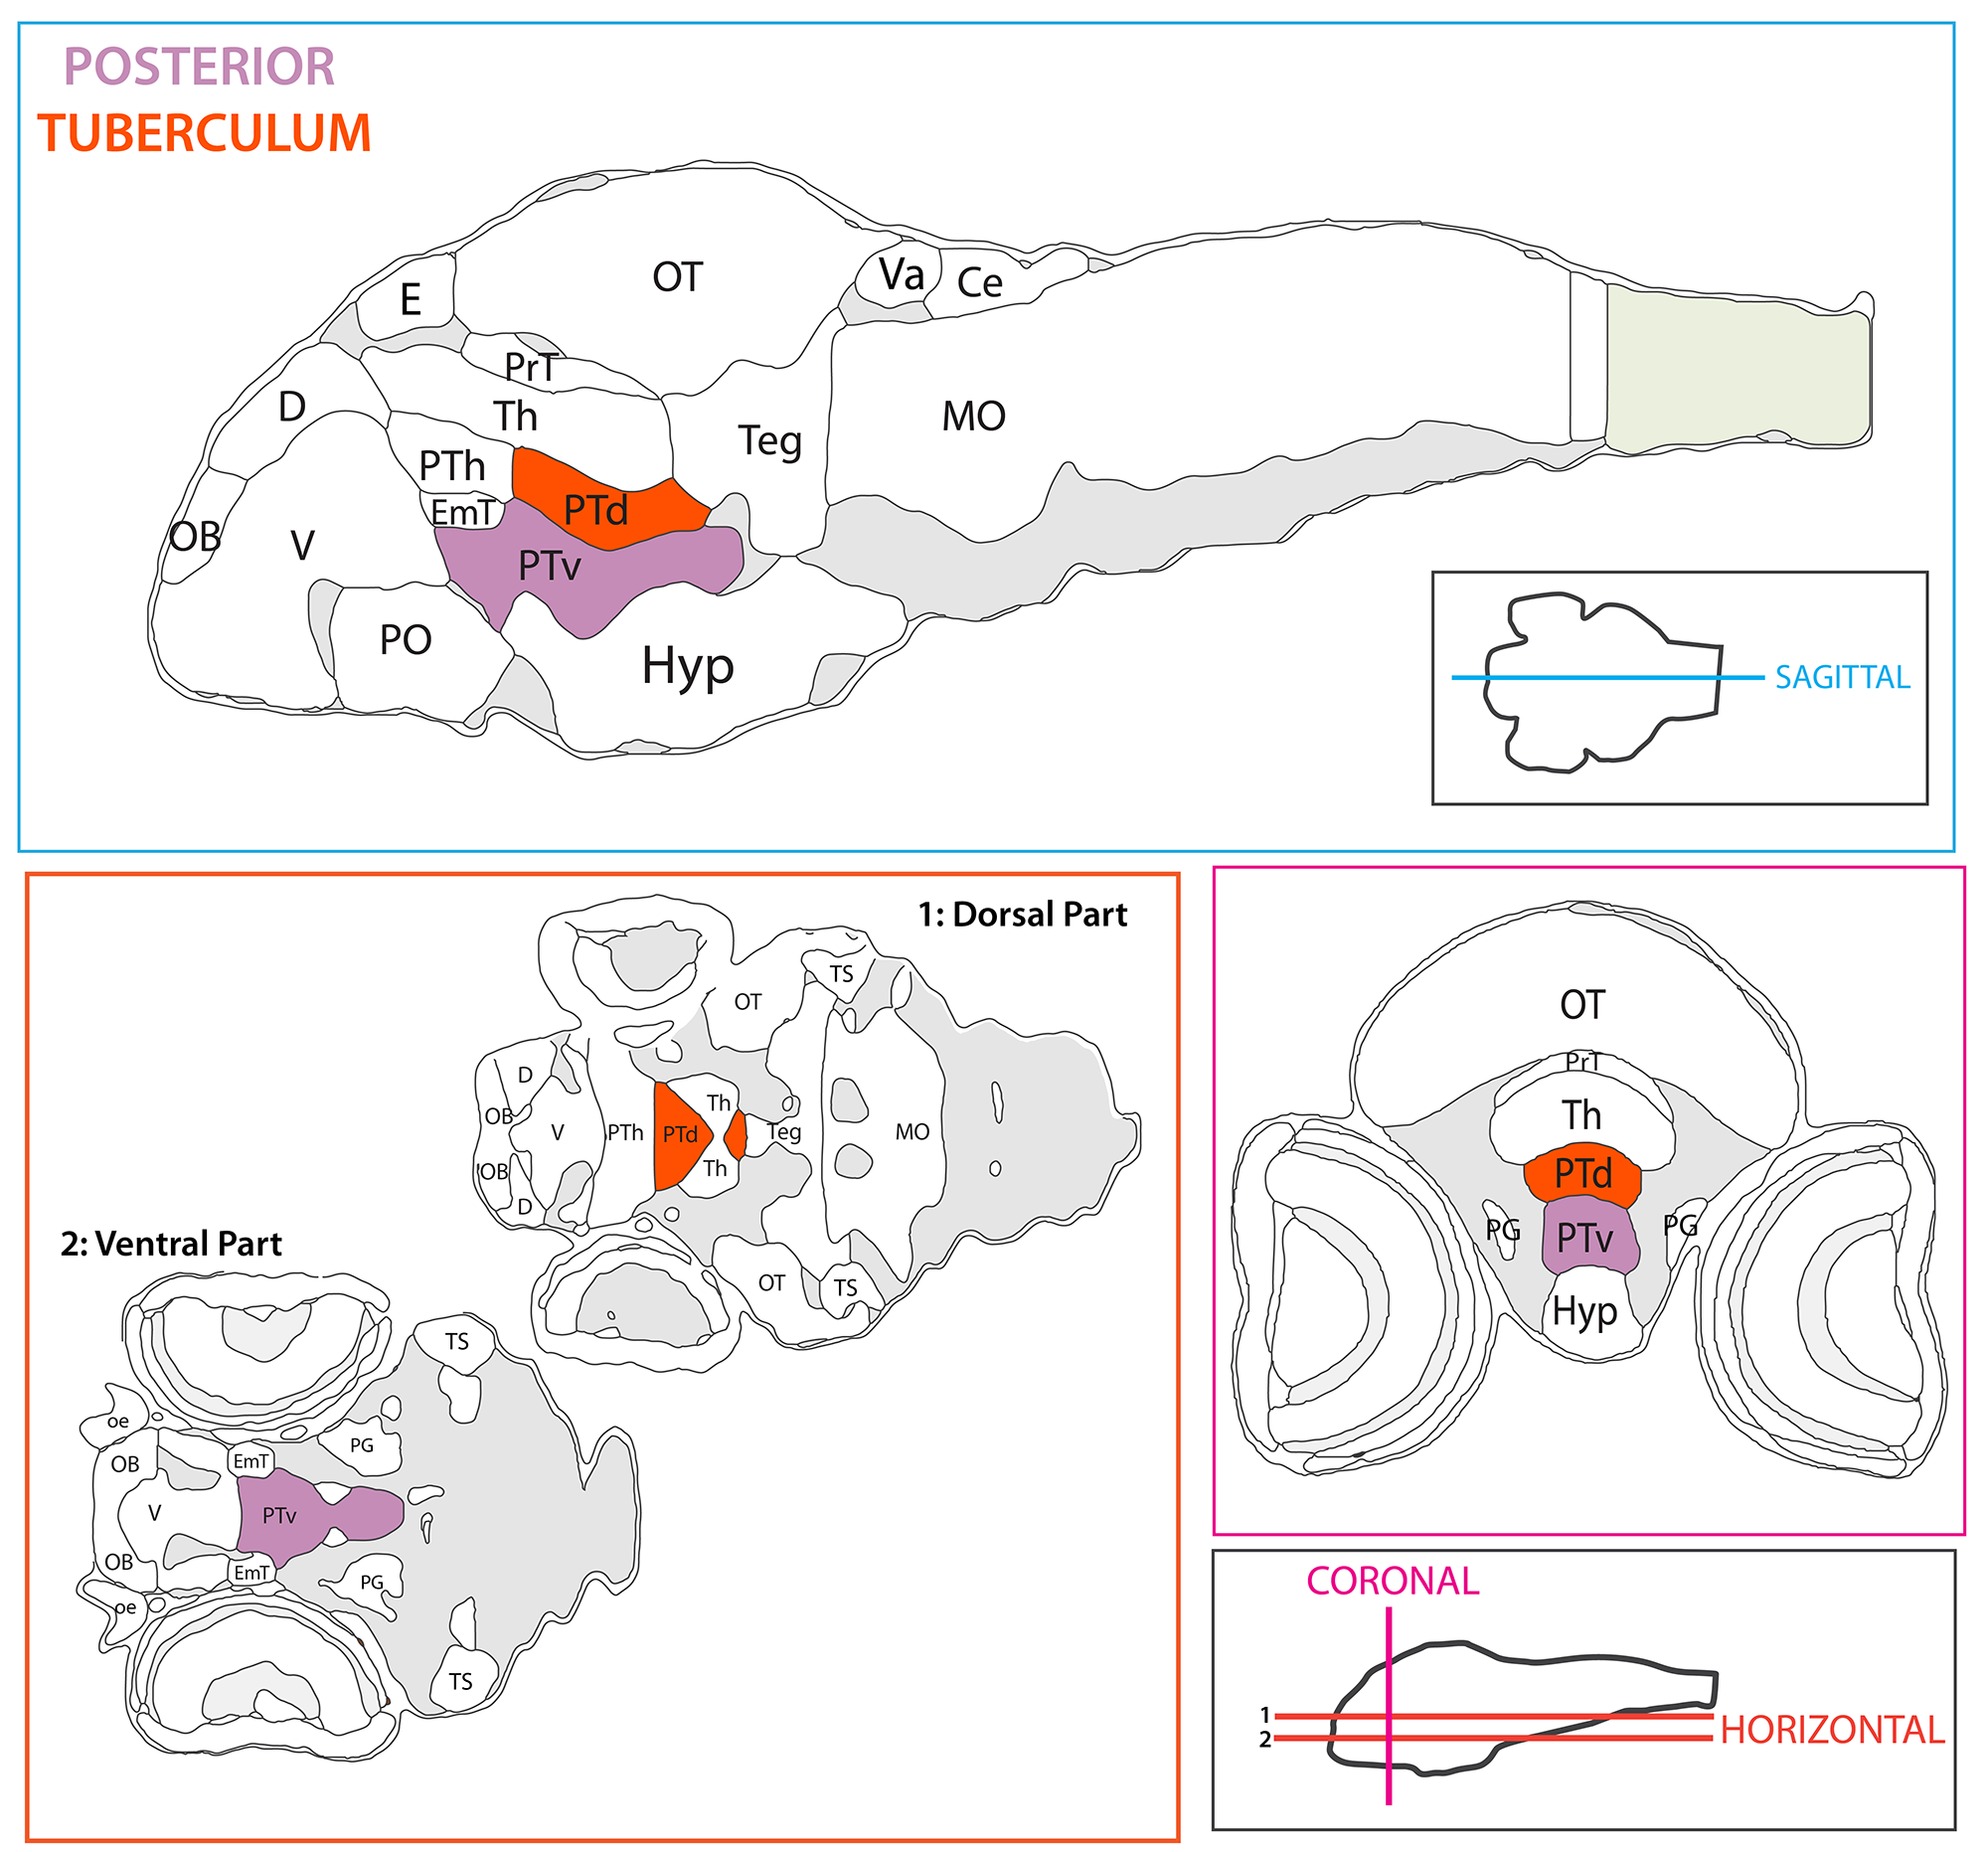 Schematic showing the position of the posterior tuberculum split into dorsal and ventral regions in sagittal, horizontal and coronal sections through the zebrafish brain.  Based on the anatomical segmentation of 3 day old zebrafish larval brain by Thomas Müller, Olaf Ronneberger, Wolfgang Driever and colleagues. For details see Ronneberger et al., Nat. Meth. 2012 and  http://vibez.informatik.uni-freiburg.de   Abbreviations: Ce, cerebellar plate; D, dorsal telencephalon/pallium; E, epiphysis; EmT, eminentia thalami; Hb, habenula; Hyp, hypothalamus; MO, medulla oblongata; OB, olfactory bulb; OT, optic tectum; PG, preglomerular complex; PO, preoptic area;PrT, pretectum; PTd, posterior tuberculum dorsal part; PTh, prethalamus; PTv posterior tuberculum ventral part; Teg, tegmentum; Th, thalamus; TS, torus semicircularis; V, ventral telencephalon/subpallium; Va, valvula cerebelli.